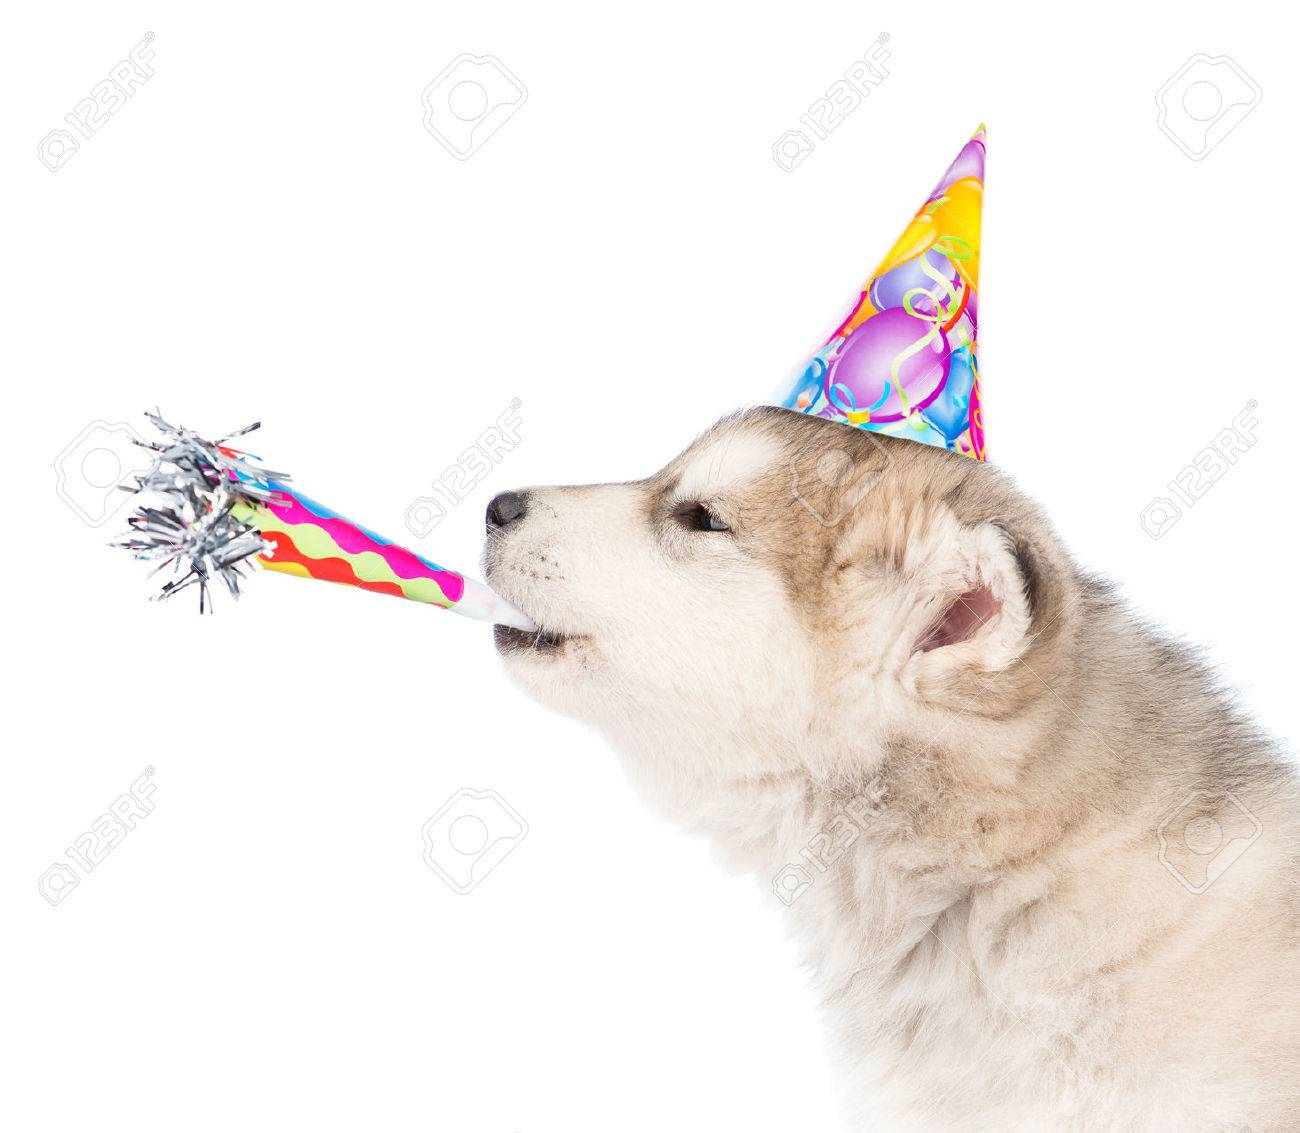 Dog In Birthday Hat Whistle Blowing Isolated On White Background